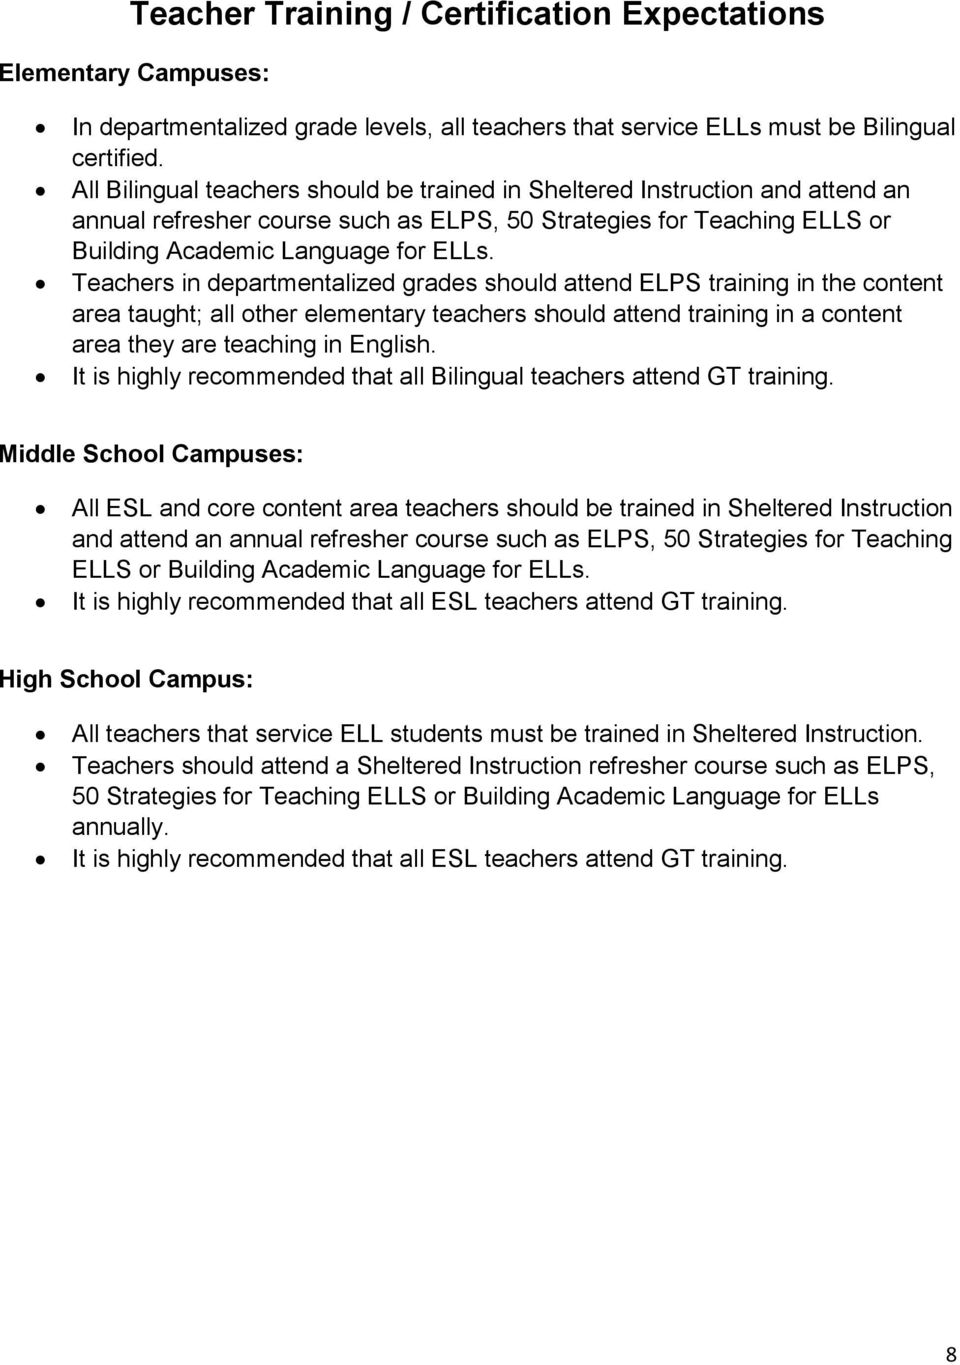 Teachers in departmentalized grades should attend ELPS training in the content area taught; all other elementary teachers should attend training in a content area they are teaching in English.